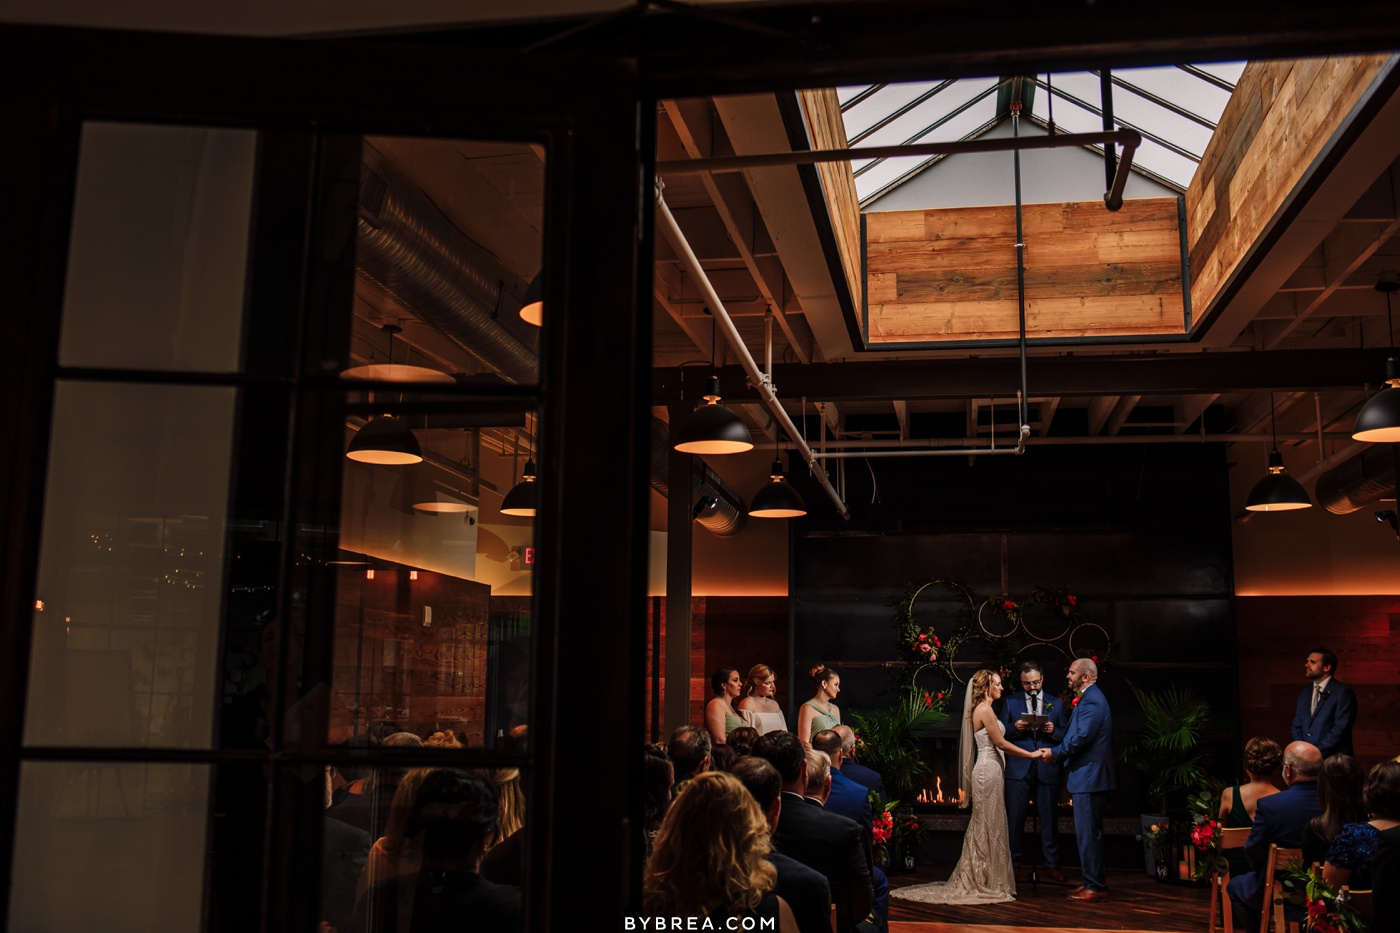 One of the Best Wedding Venues in Baltimore, The Accelerator Space